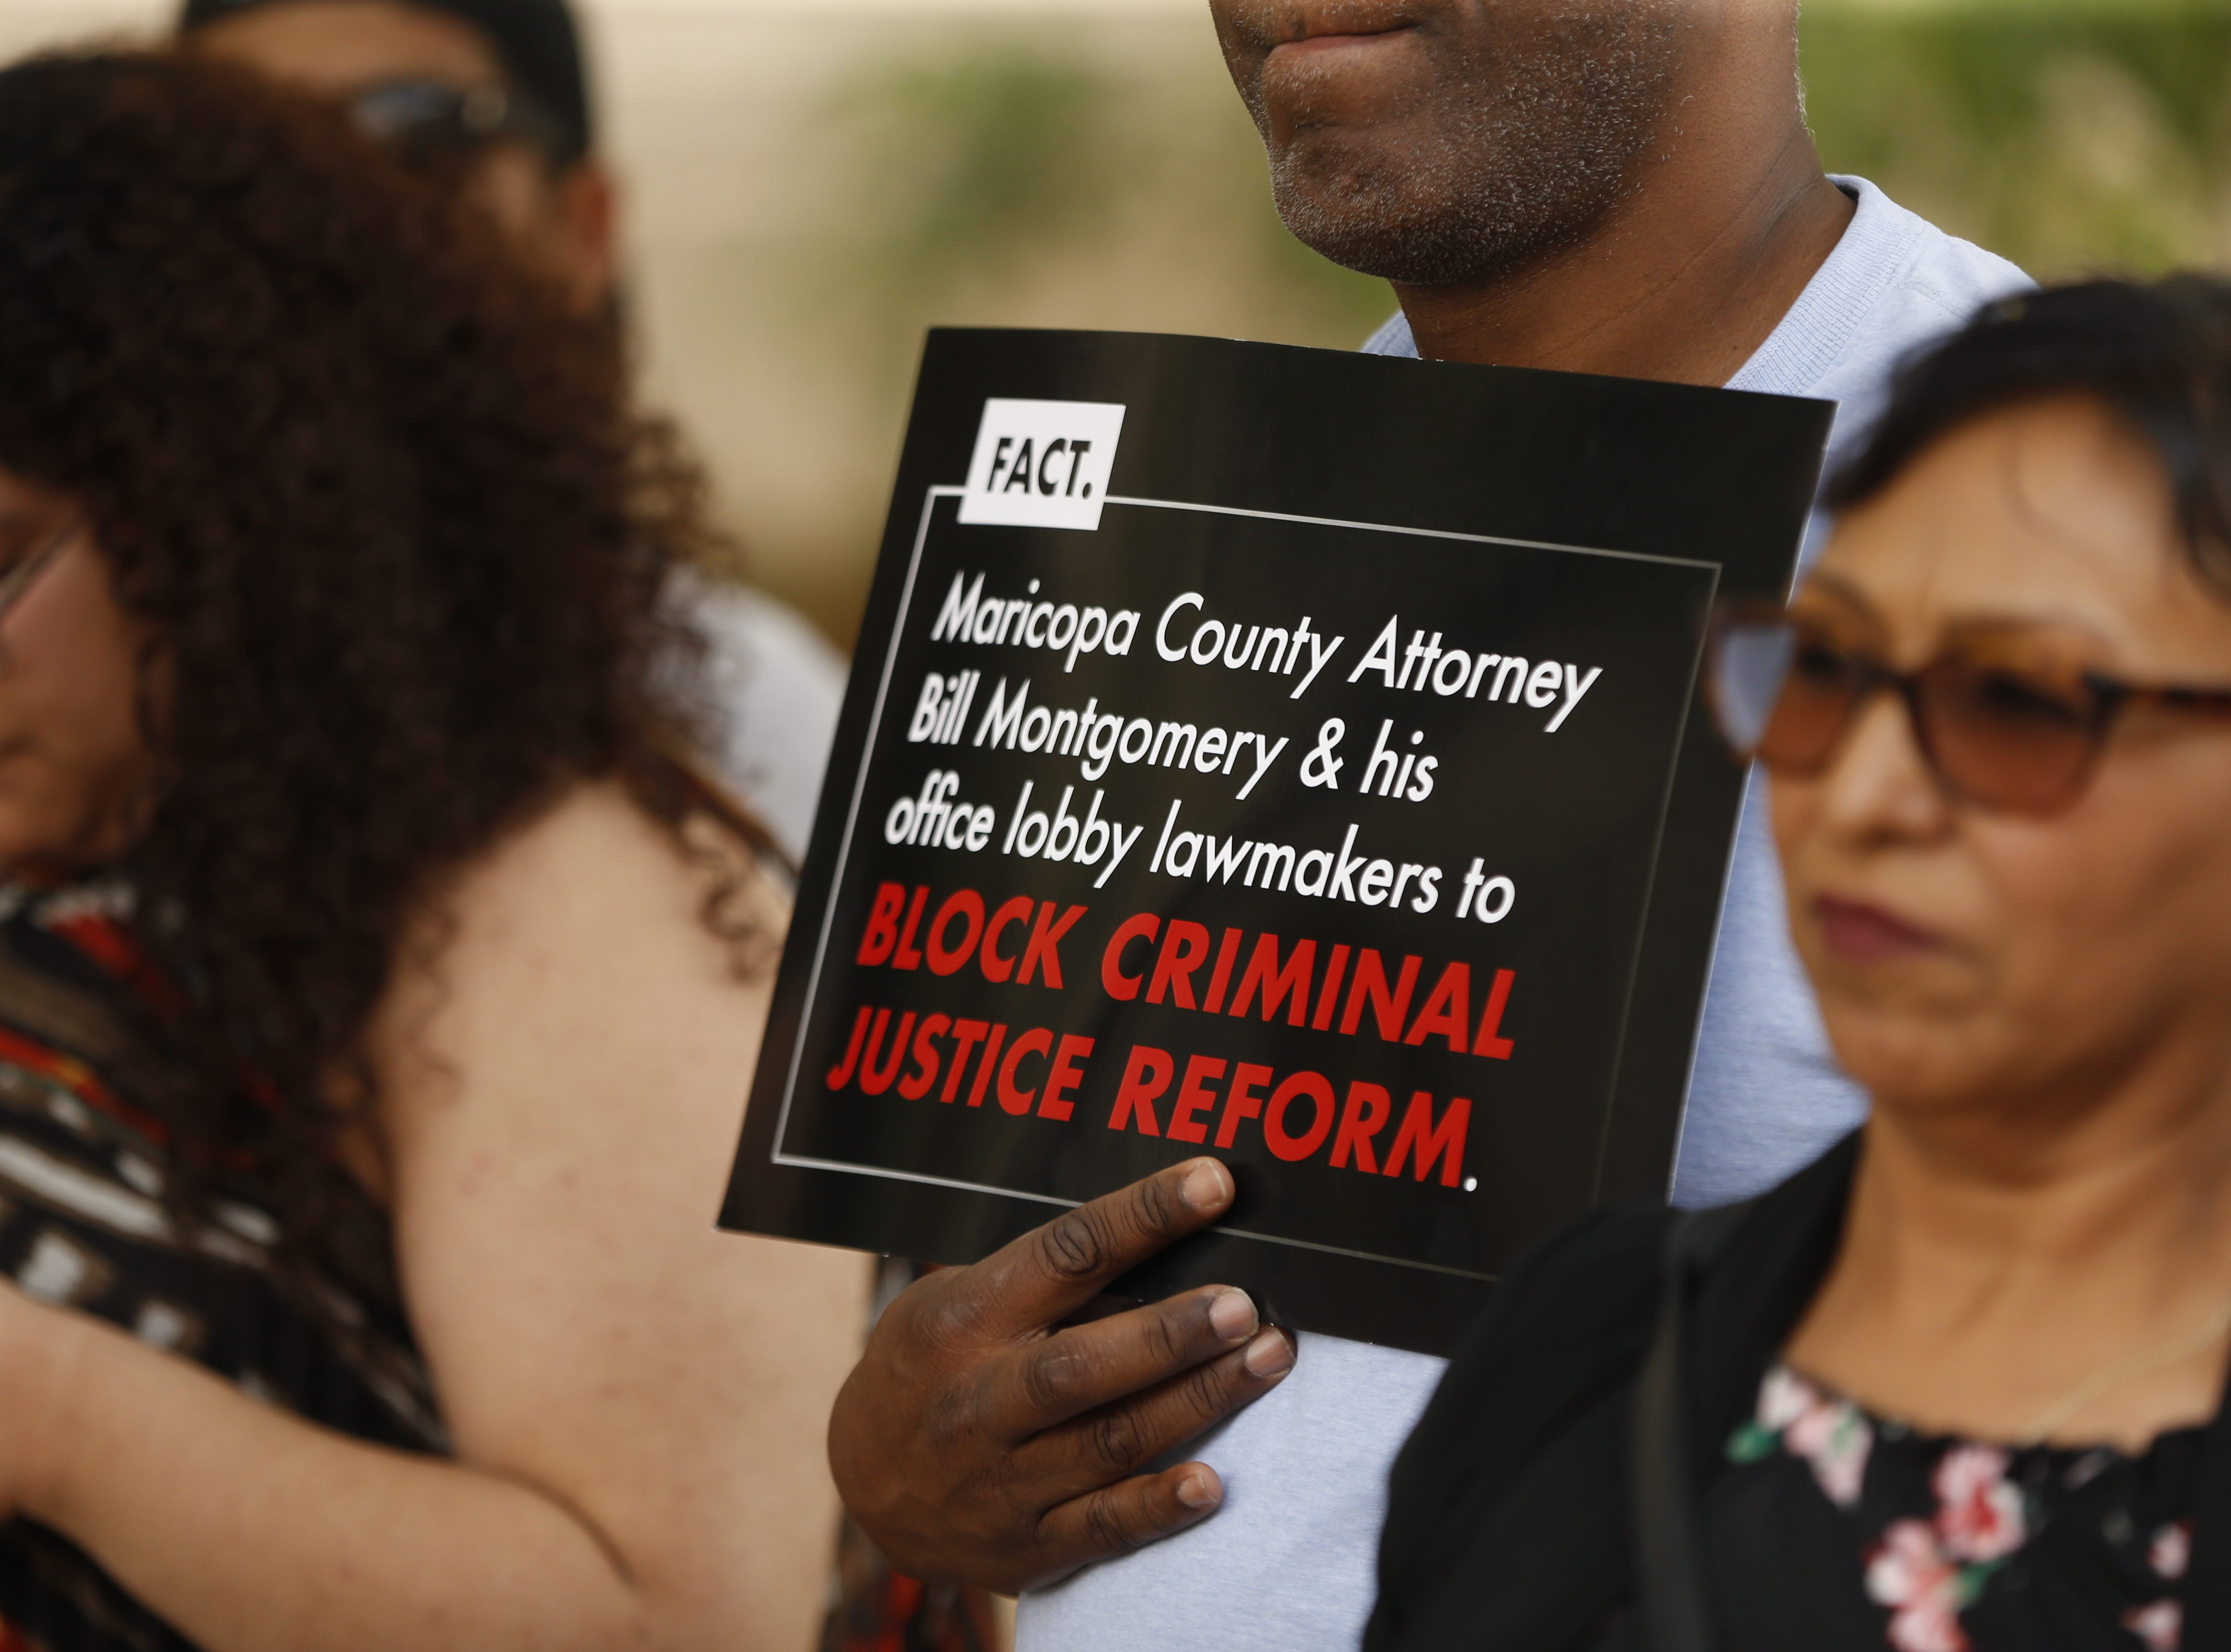 People hold signs during a protest against cash bail at the Maricopa County Attorney's office in Phoenix on May 9, 2019.